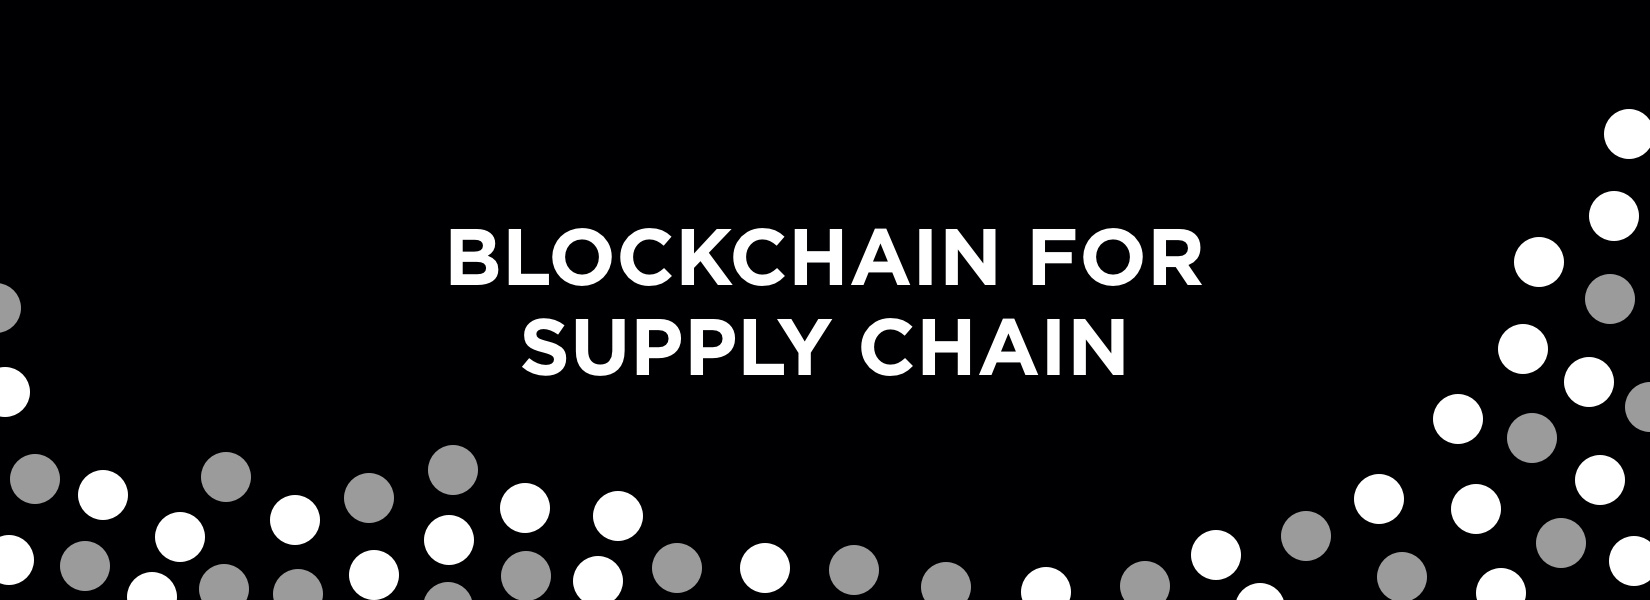 Blockchain for Supply Chain Case study